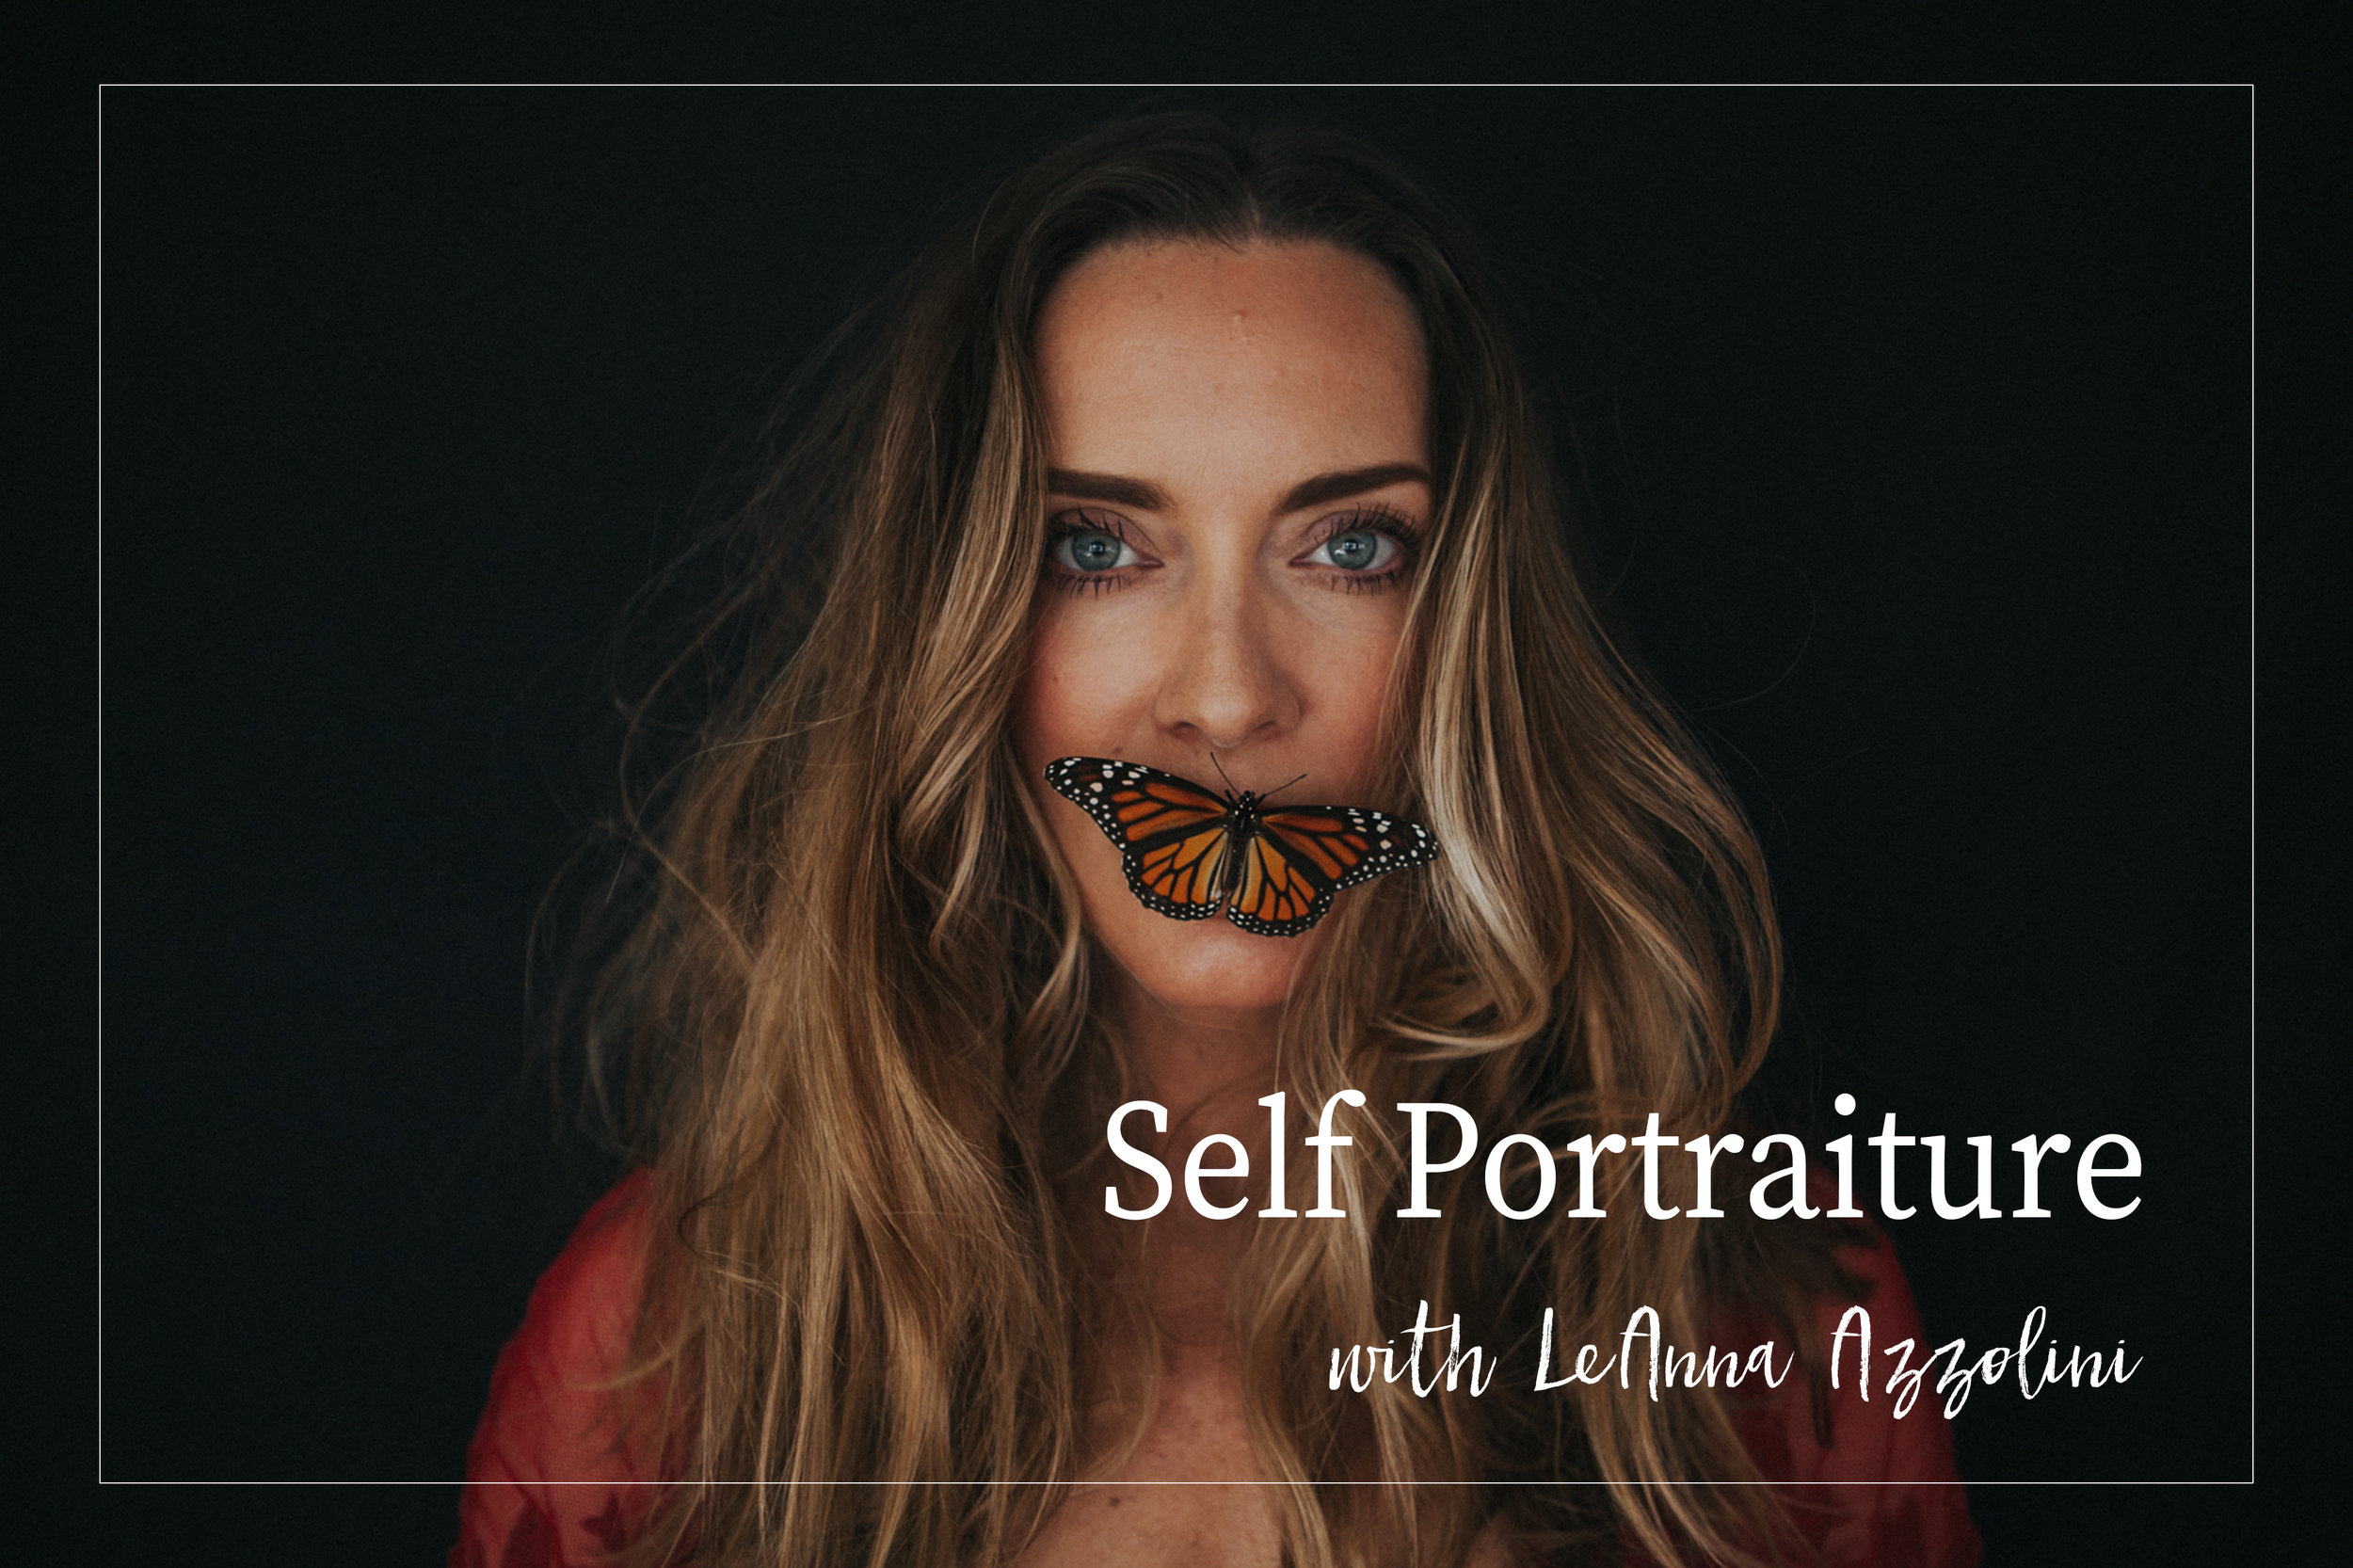 Self Portraiture: The Complete Journey - with LeAnna Azzolini